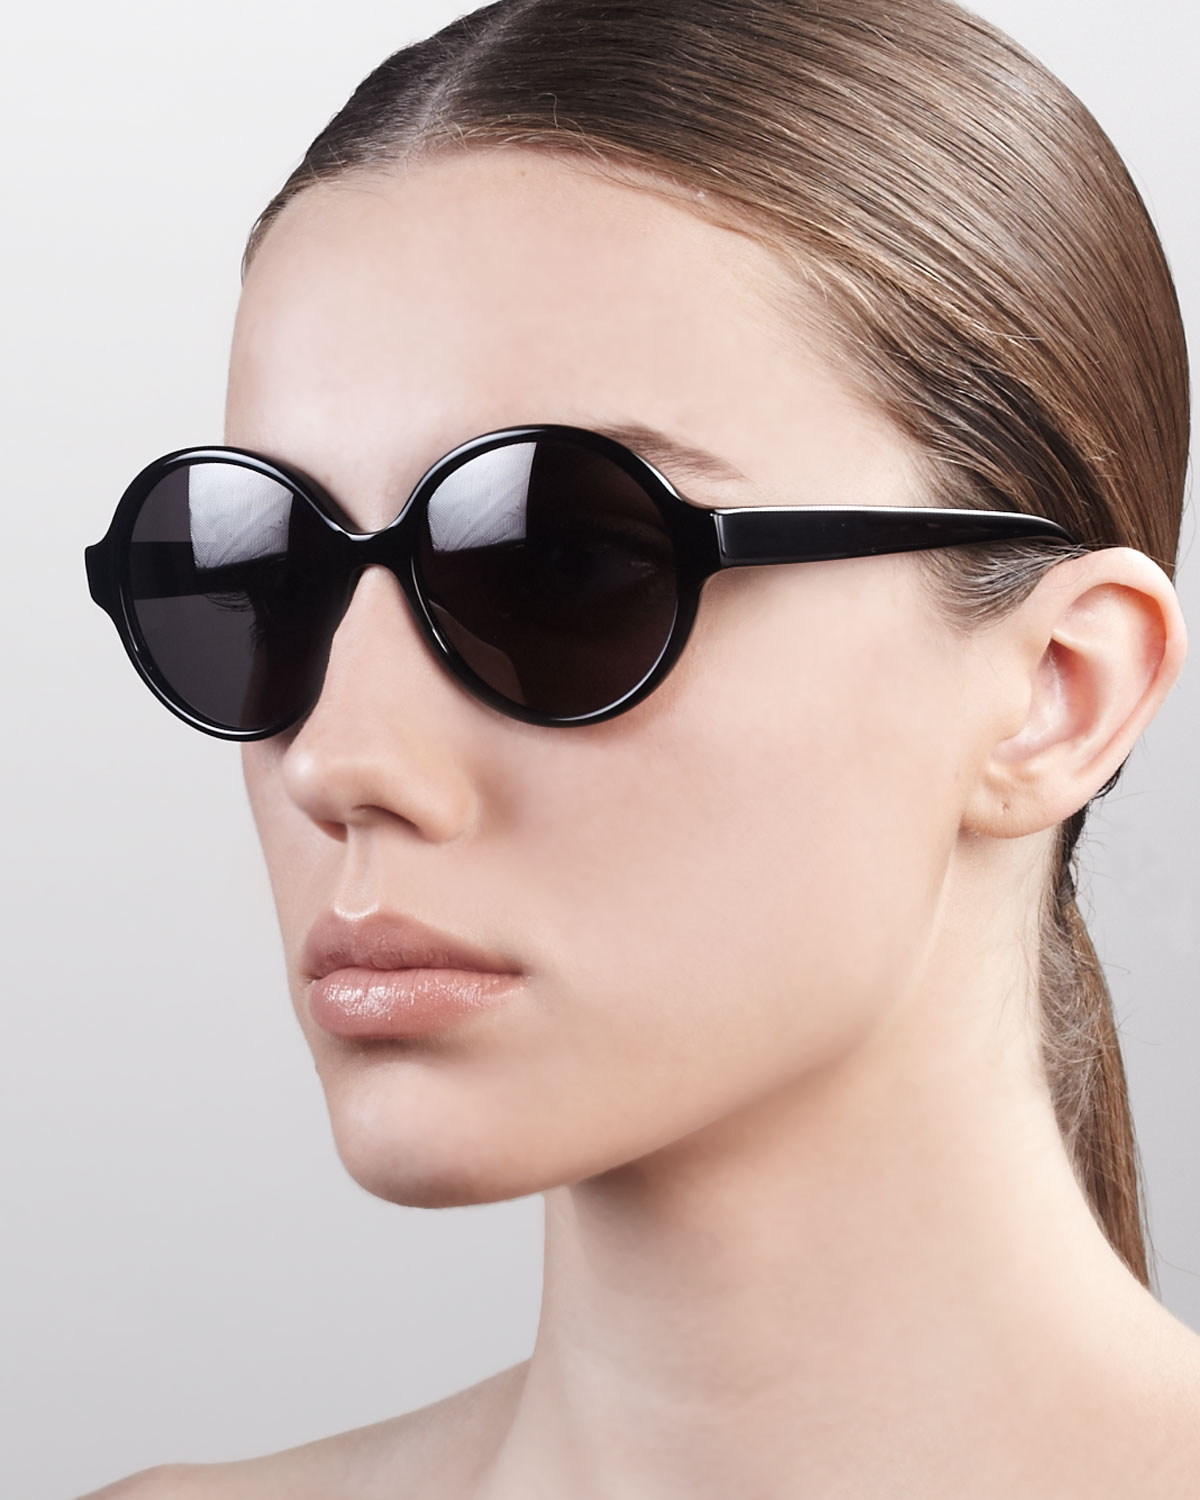 445b49afad D0CQE Barton Perreira Bouvier Oversized Rounded Sunglasses